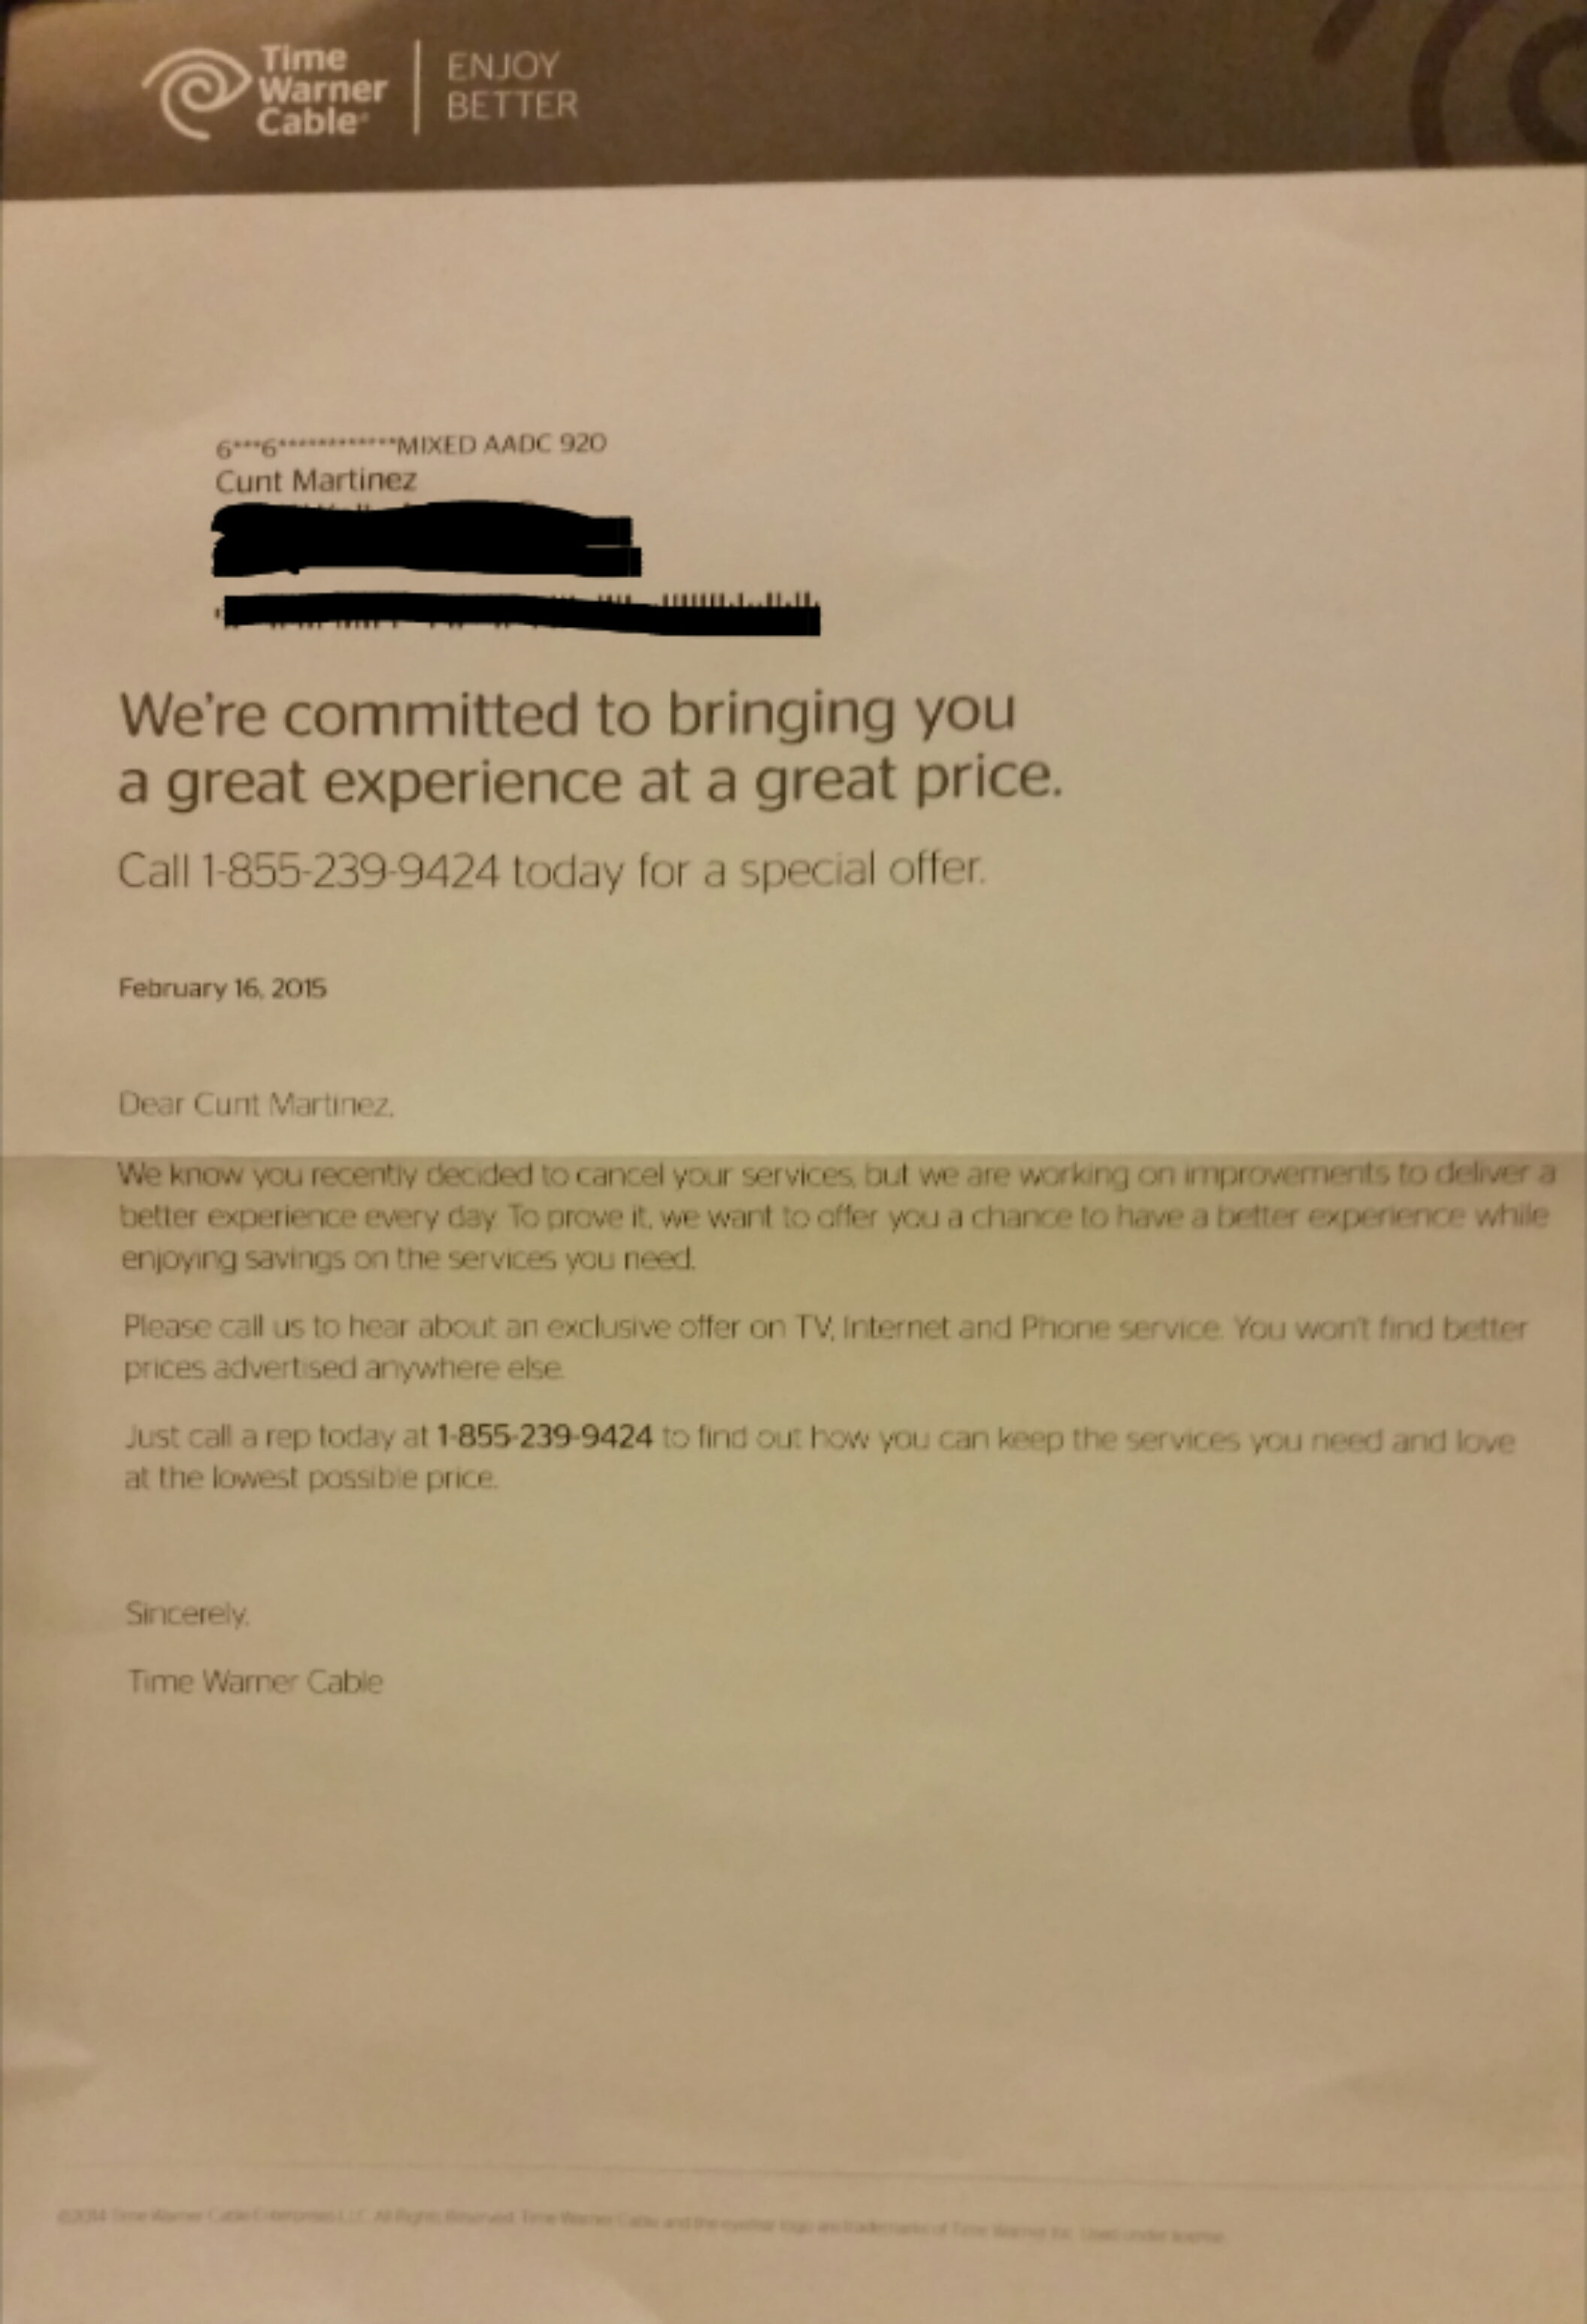 Time Warner Cable Calls Customer C T After She Reports Cable